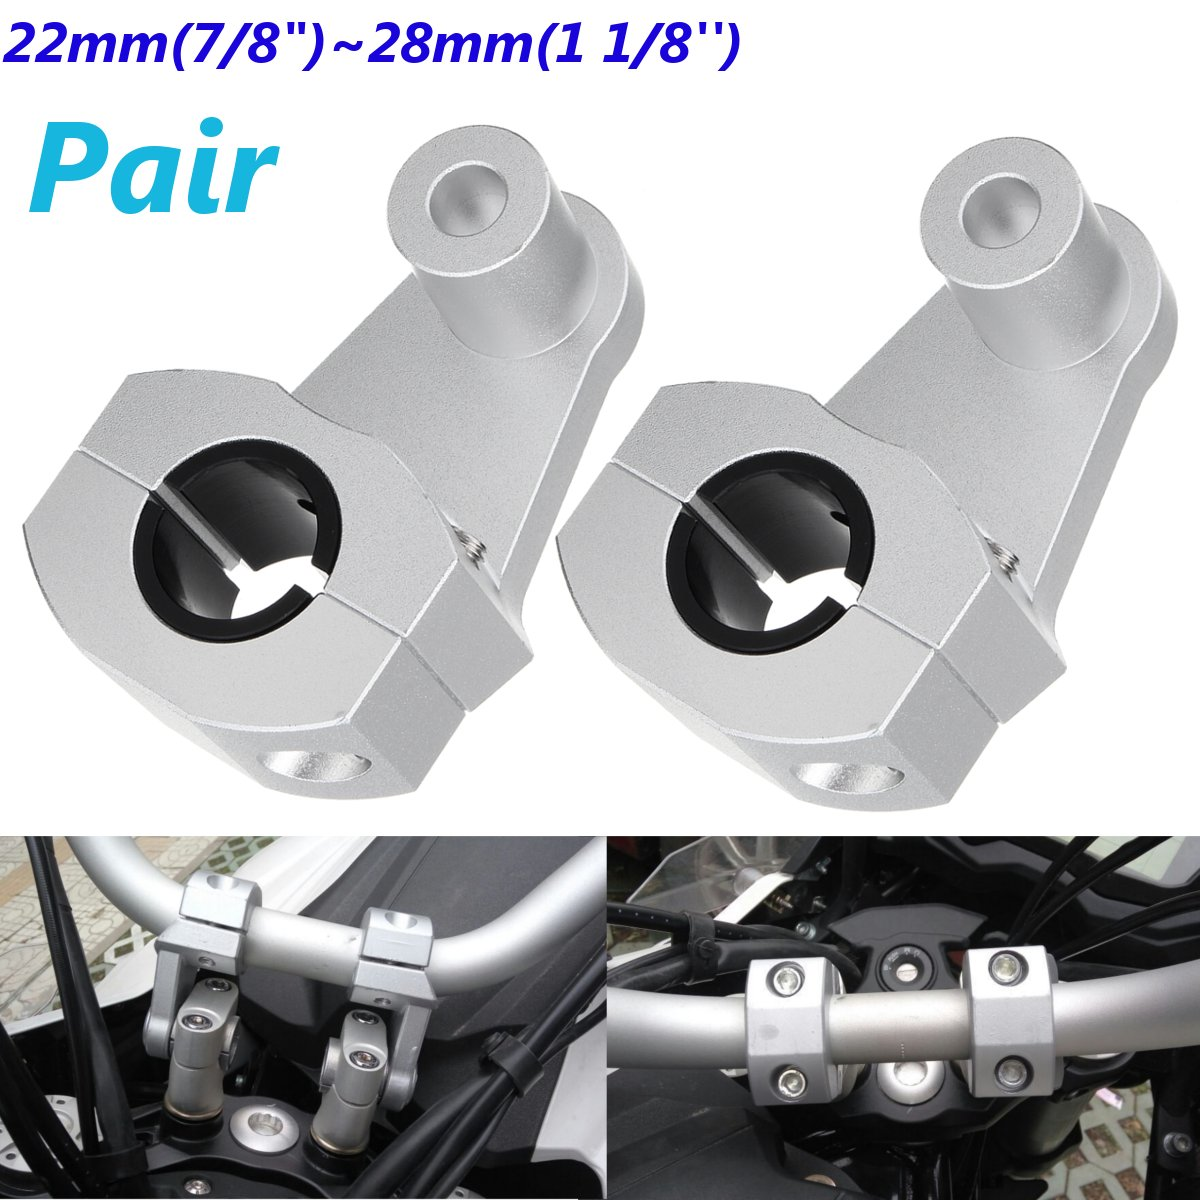 2 Pcs Motorcycle Motor <font><b>Handlebar</b></font> Clamps Sliver <font><b>Riser</b></font> 22mm <font><b>28mm</b></font> for Suzuki for Yamaha for BMW for Honda Aluminum Alloy bar image